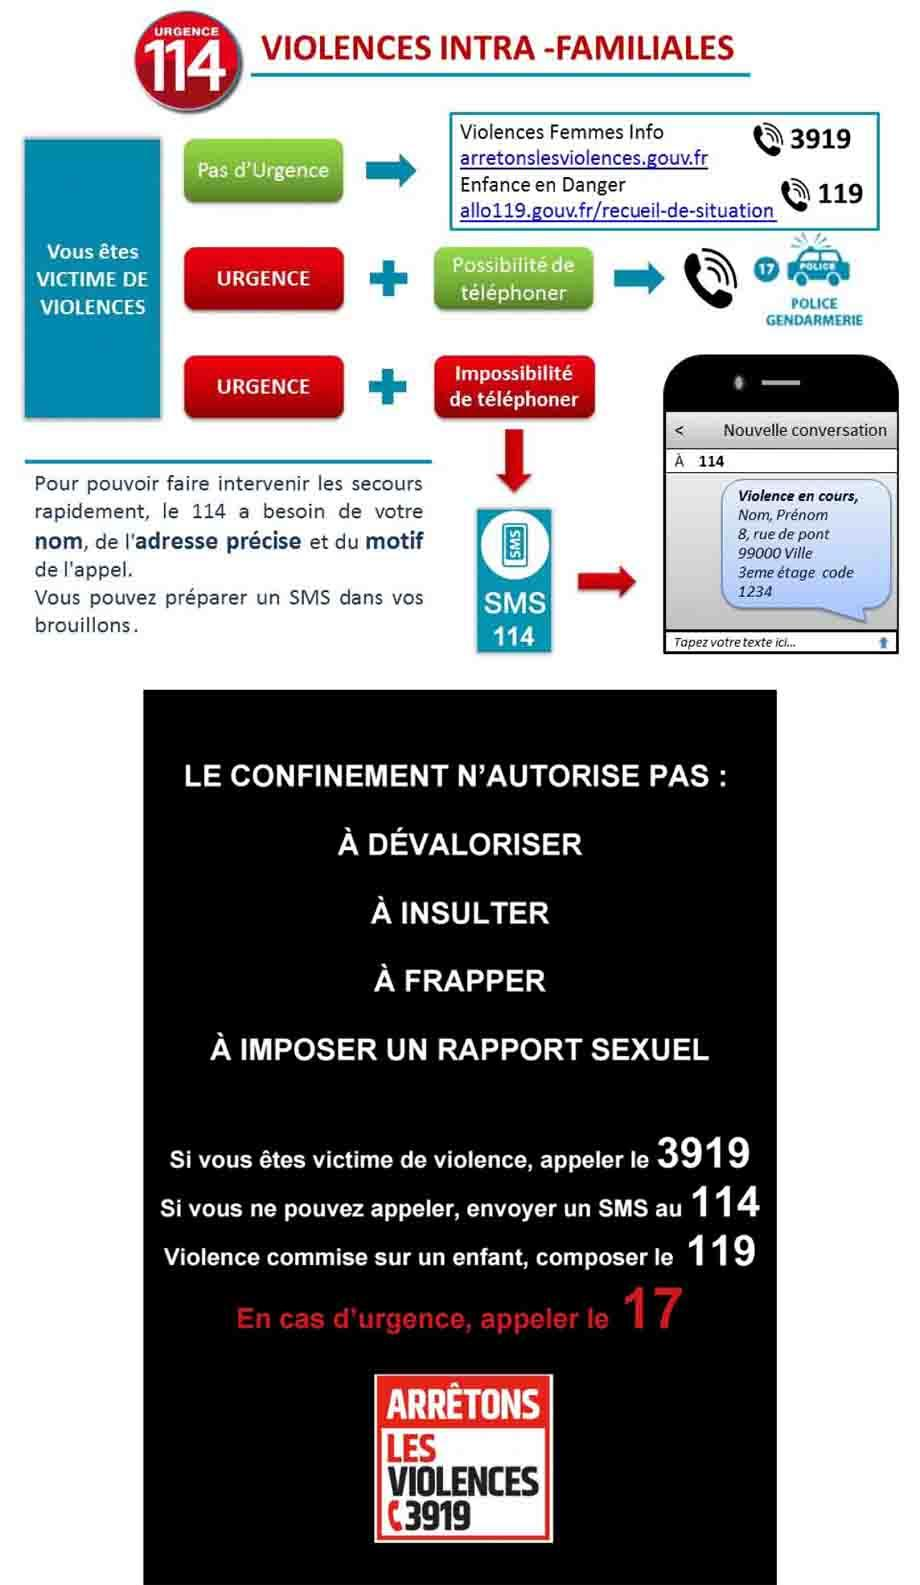 Vif confinement et violences 2